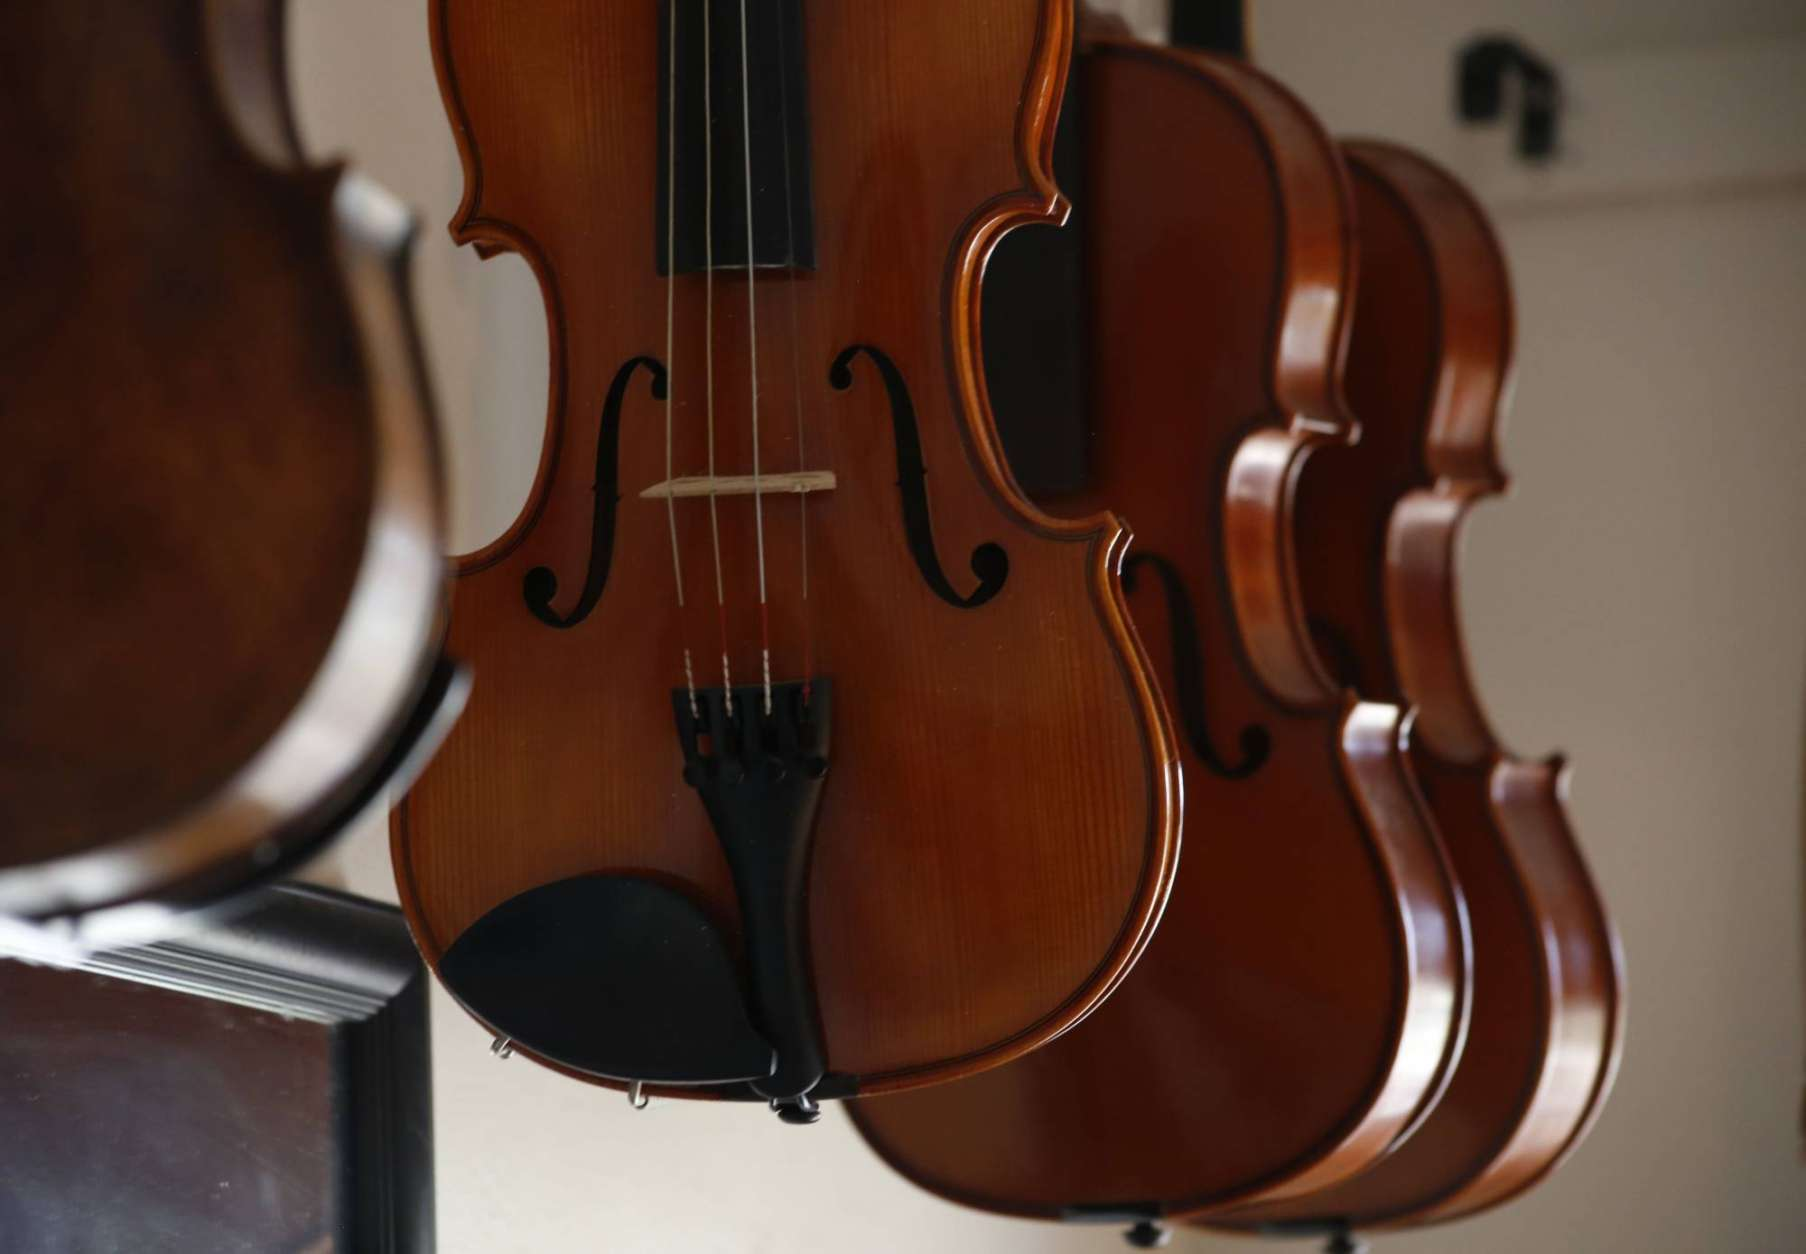 Violins hang in the workshop in Sonja St. John's Neenah, Wis., home on Monday, May 8, 2017. Her brother, Jon St. John died in 2007 in the Iraq war. Among other things, Sonja has found solace in her career, making and restoring violins. (AP Photo/Martha Irvine)